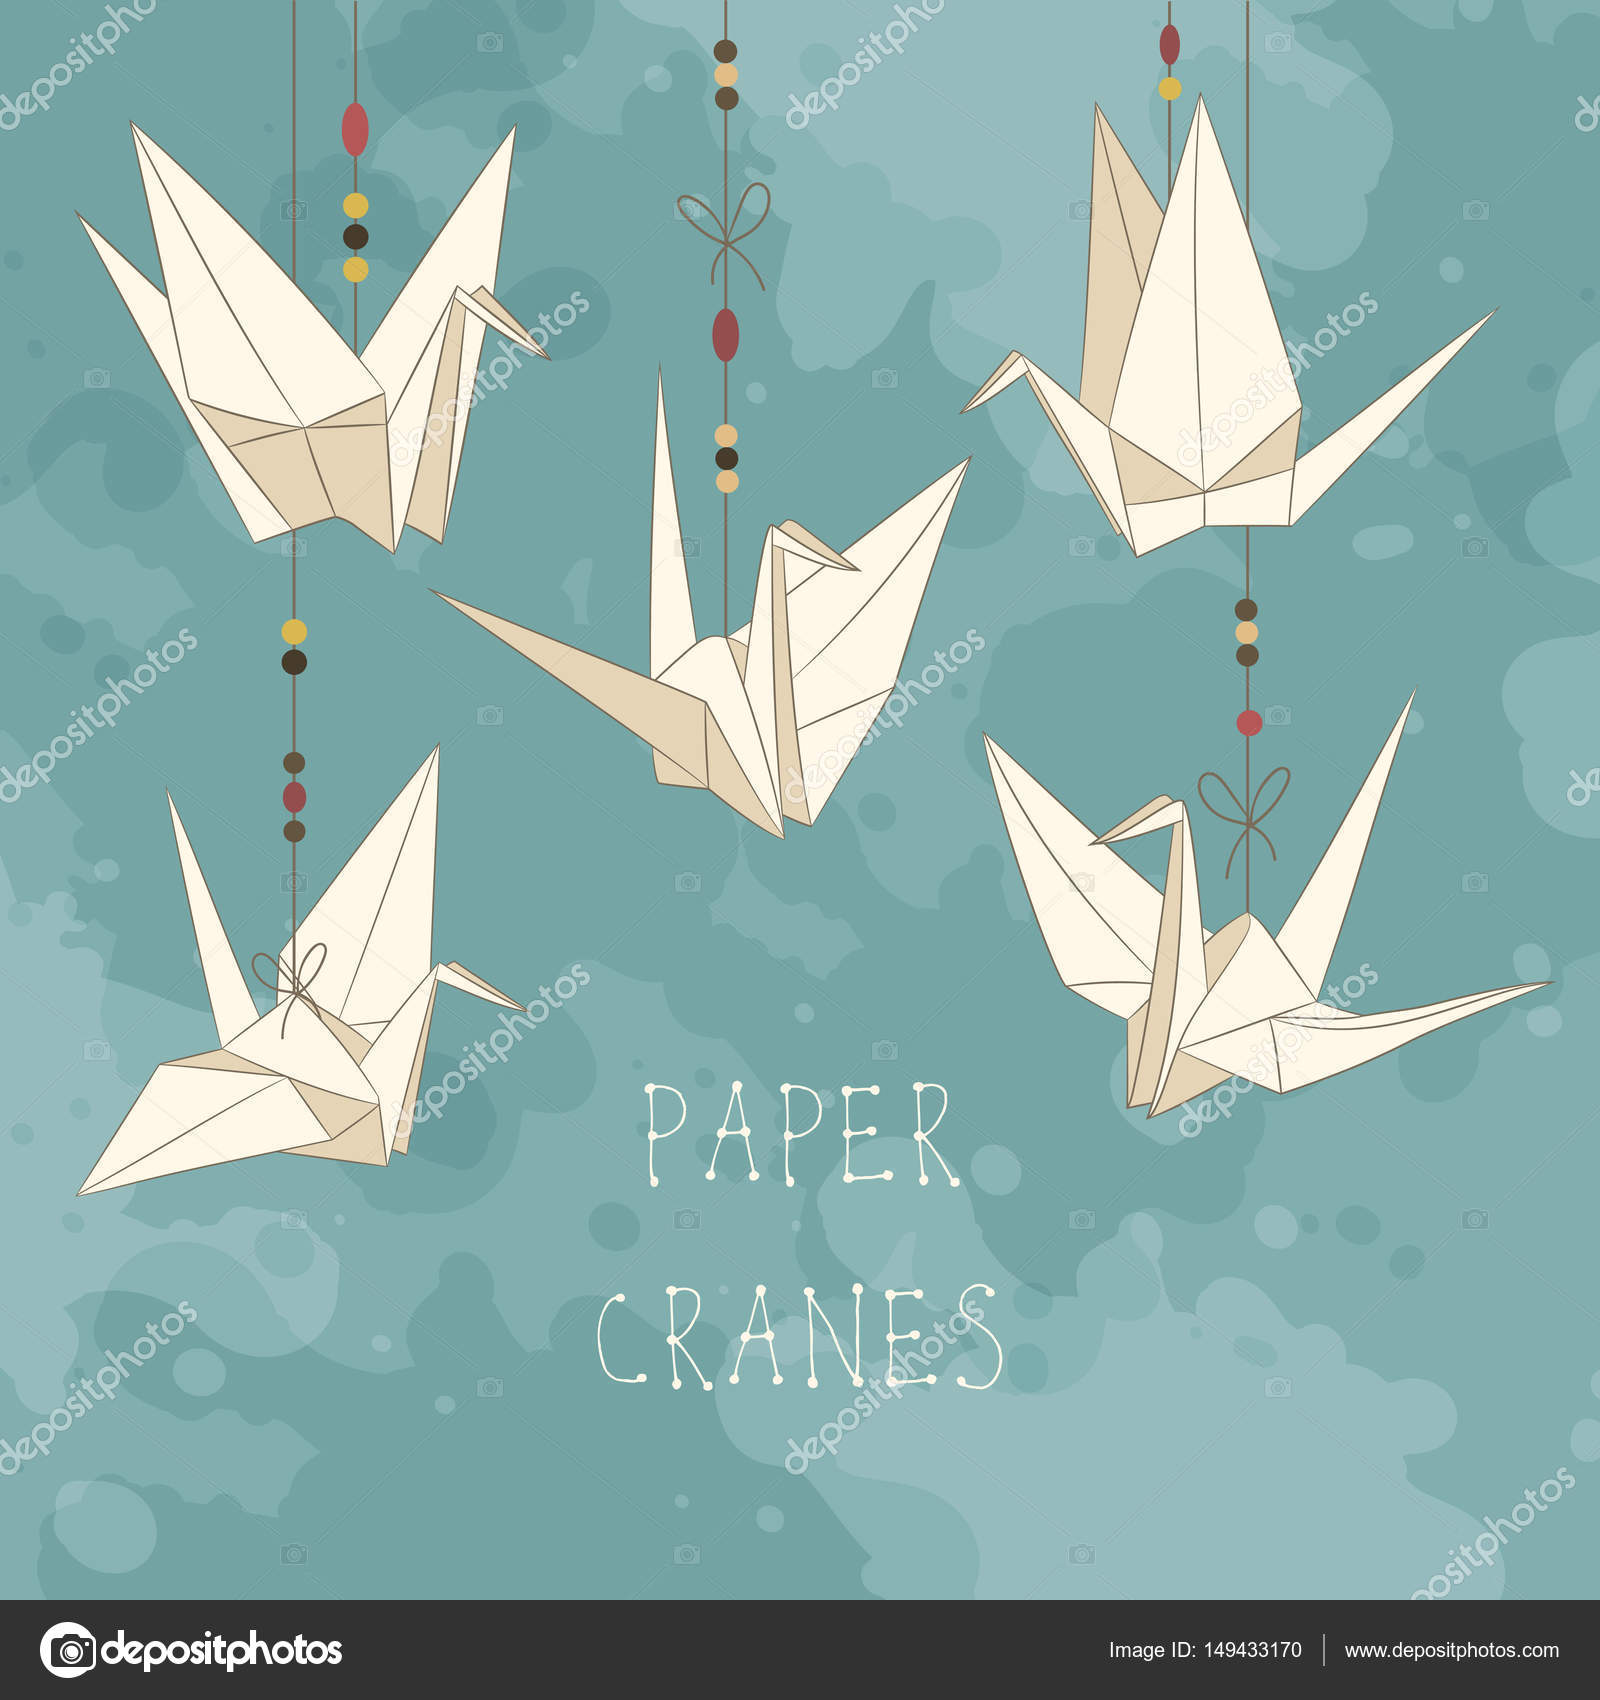 Paper crane: how to make a figure symbolizing happiness